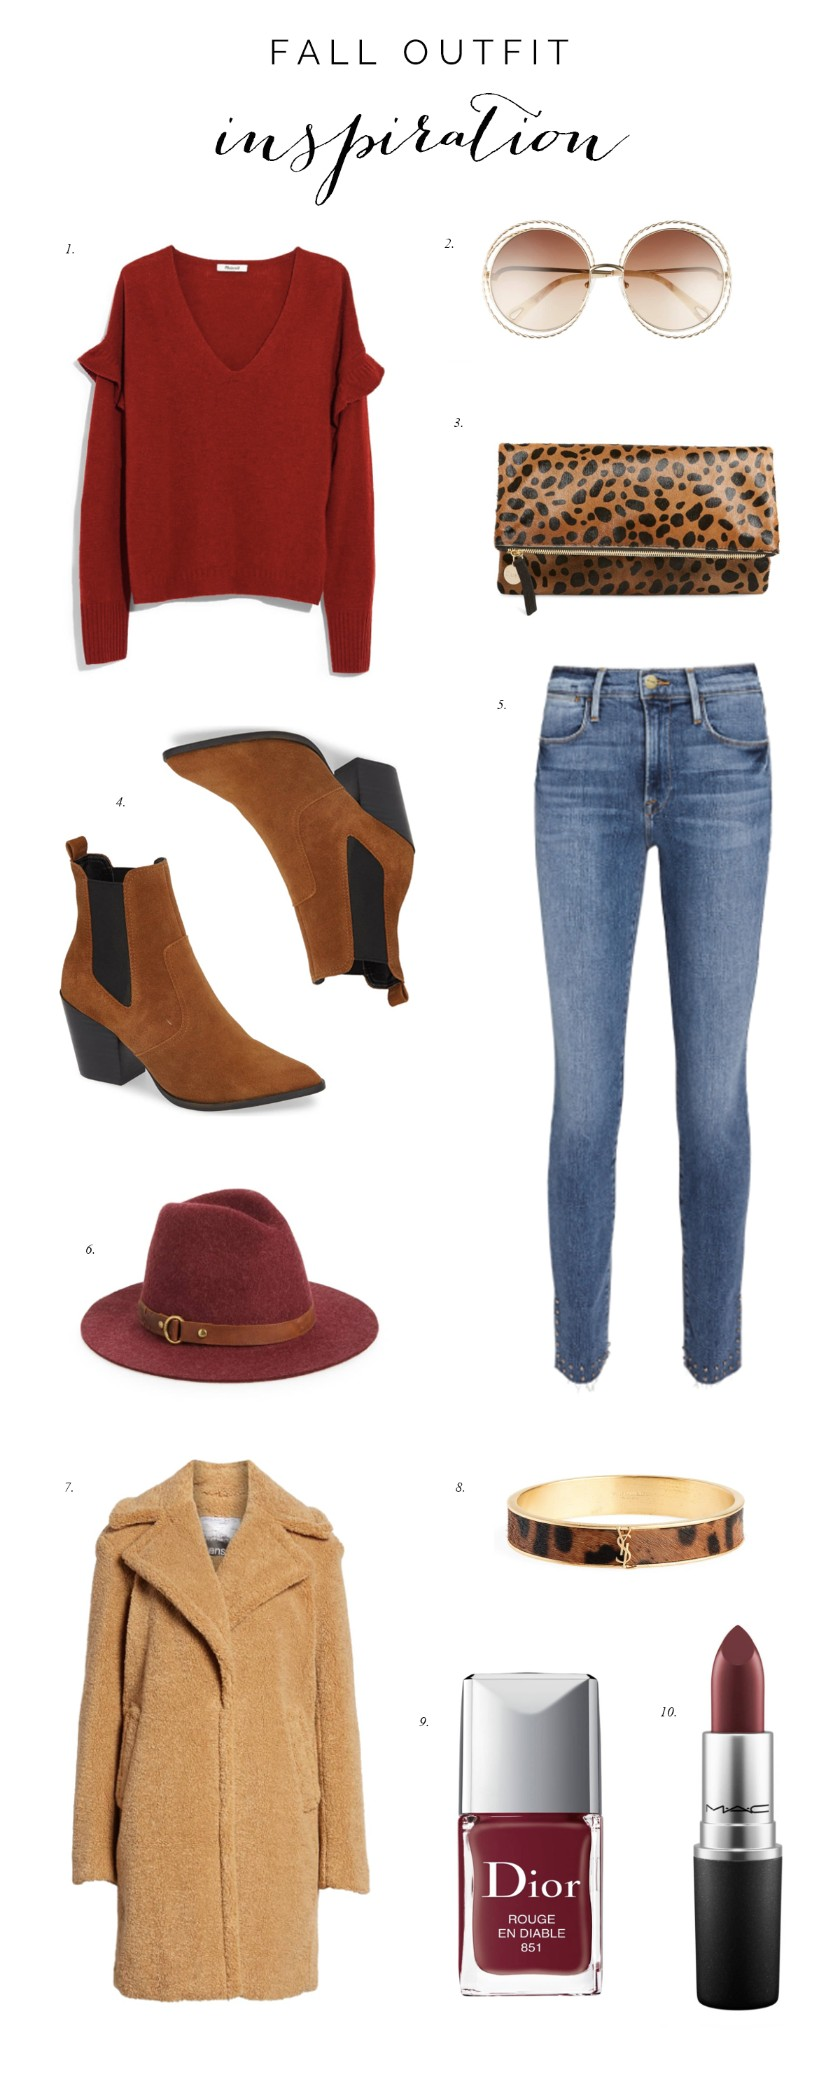 22715a56e8bc Friday Faves – Leopard and Neutral Fall Outfit Inspo | Style Elixir |  Bloglovin'